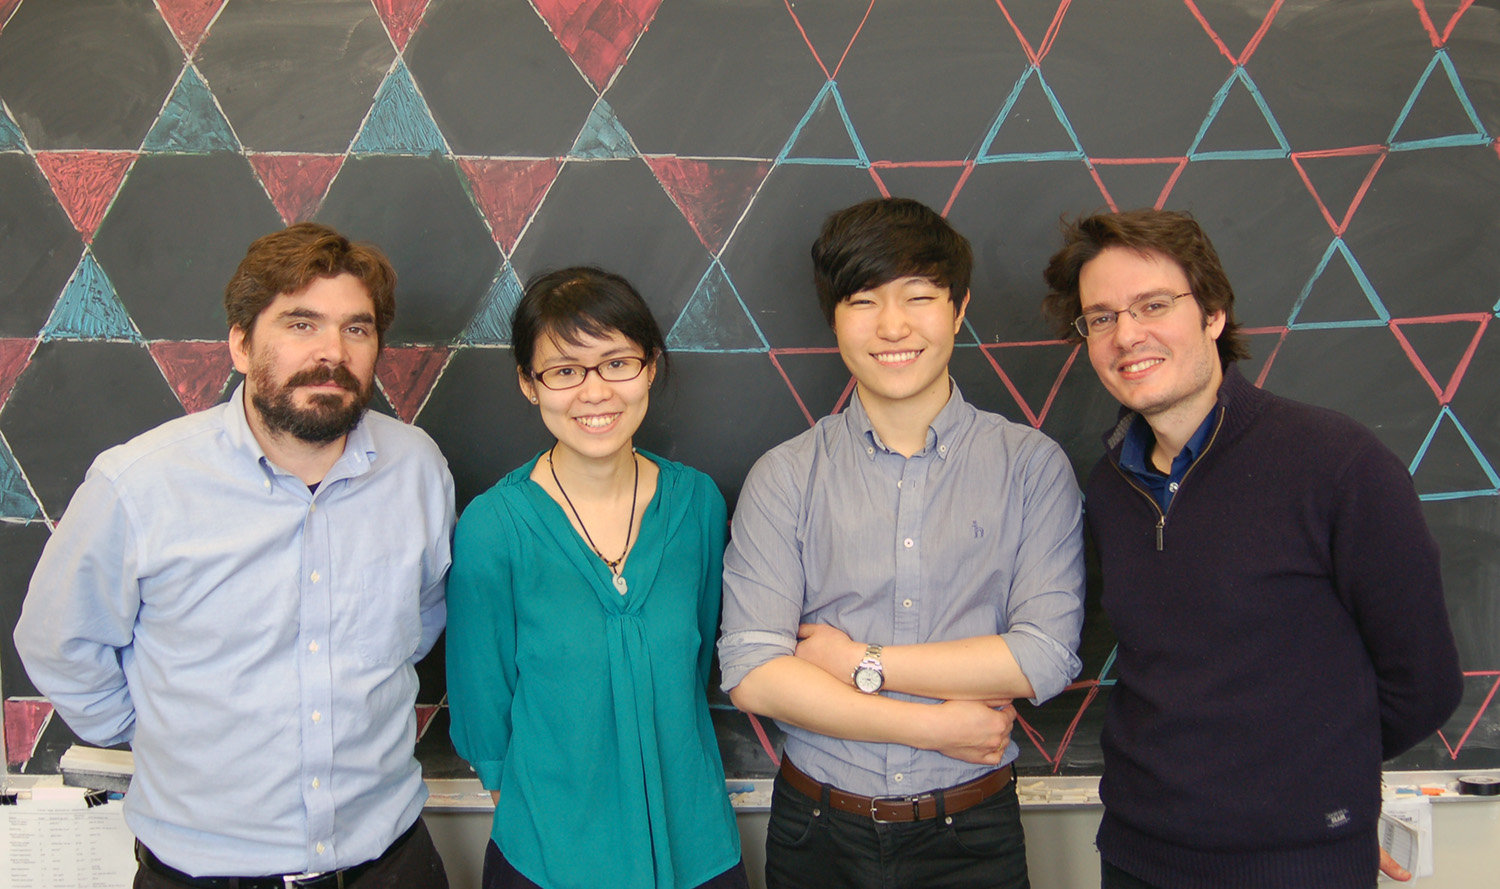 'Kagome metal': Physicists discover new quantum electronic material